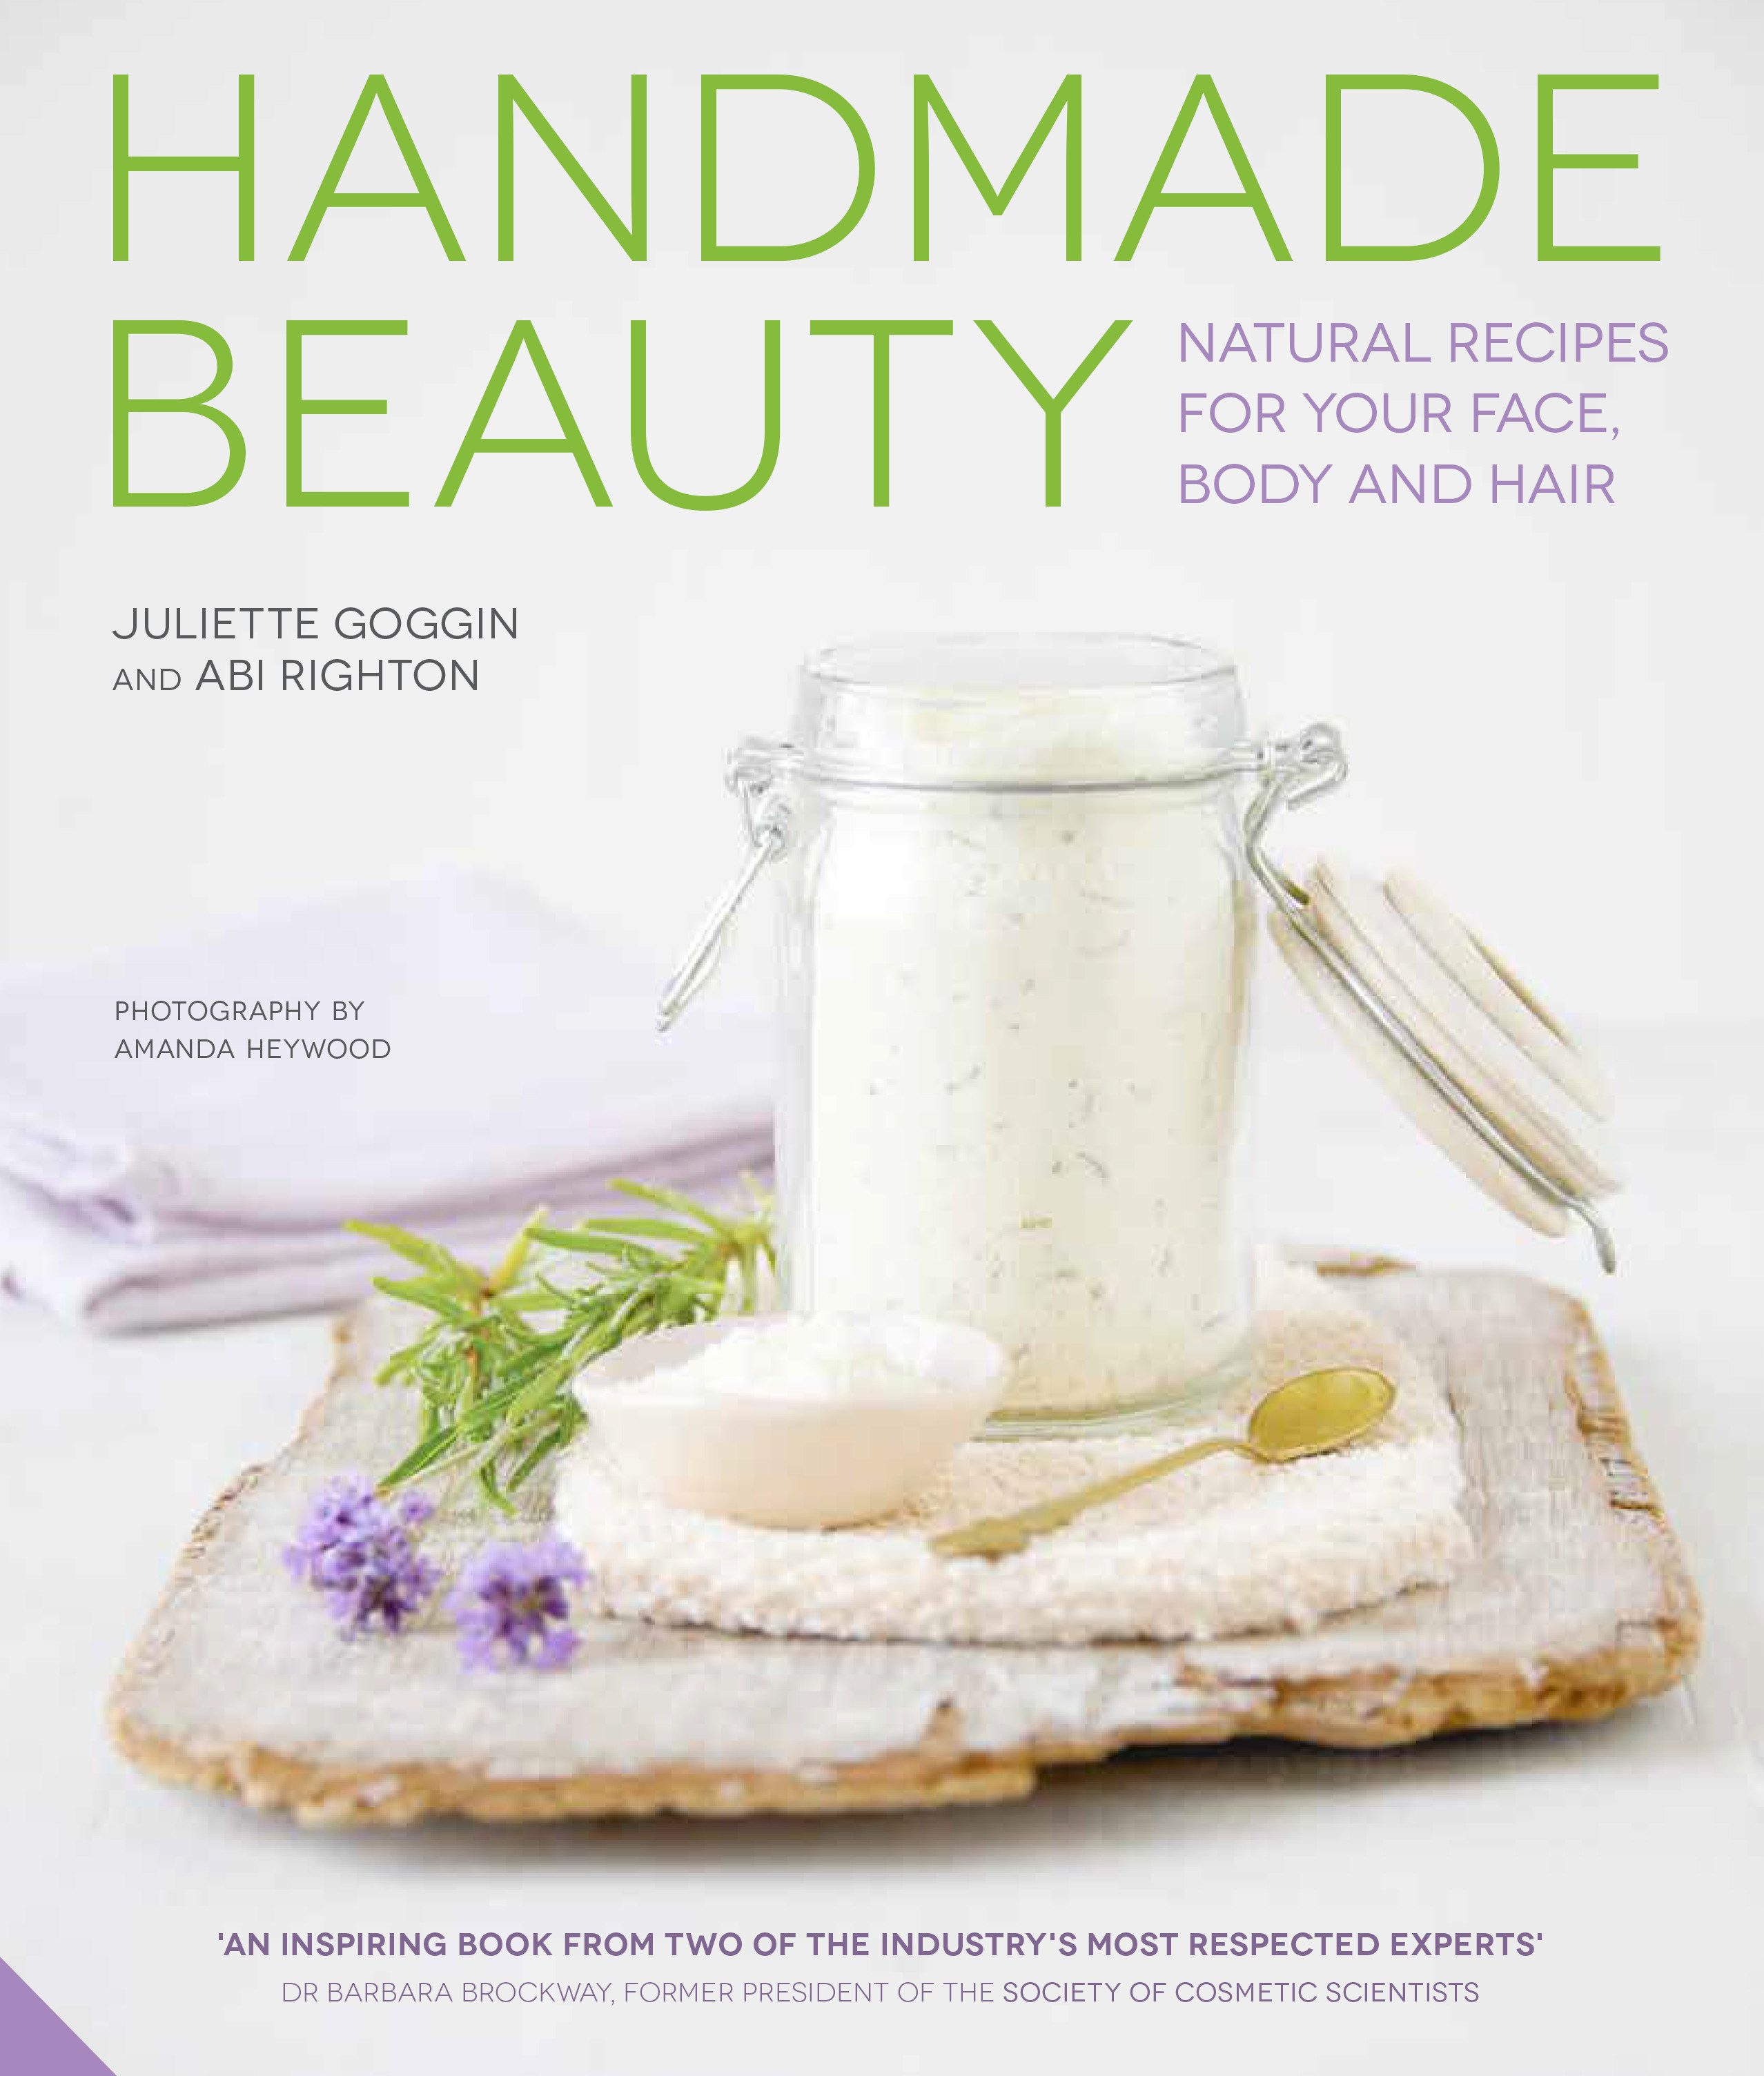 Handmade Beauty Juliette Goggin And Abi Righton 9781910254189